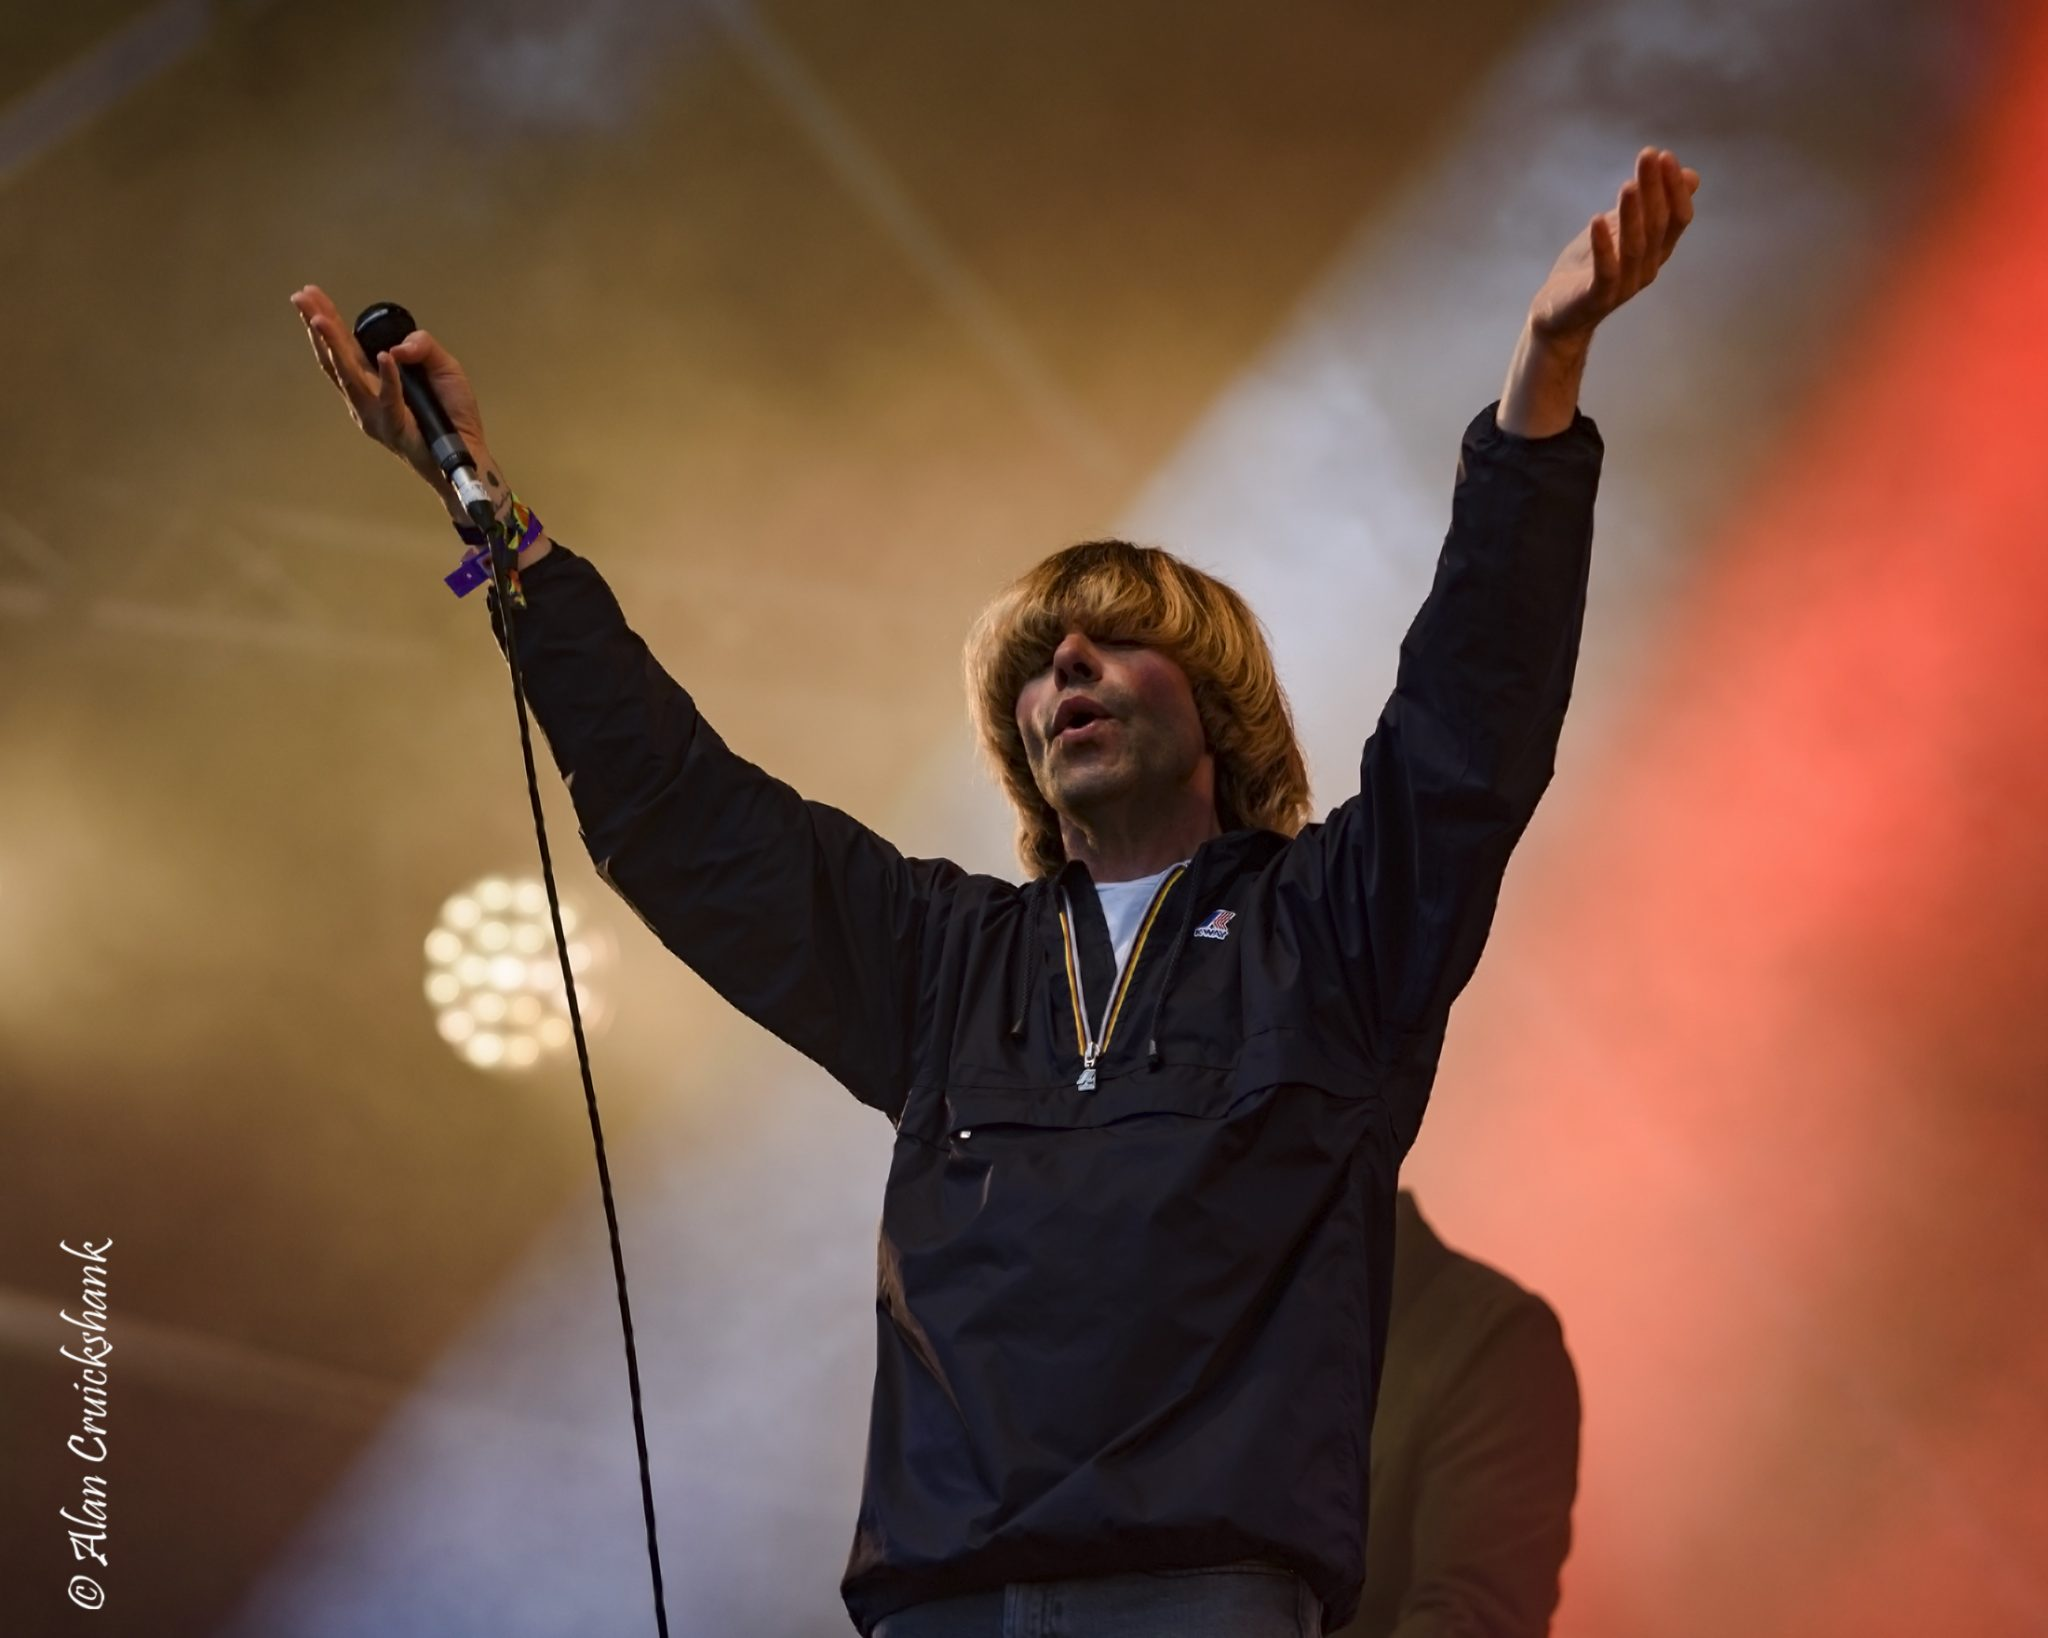 tVPZC - The Charlatans, Friday Belladrum 2018 - IMAGES